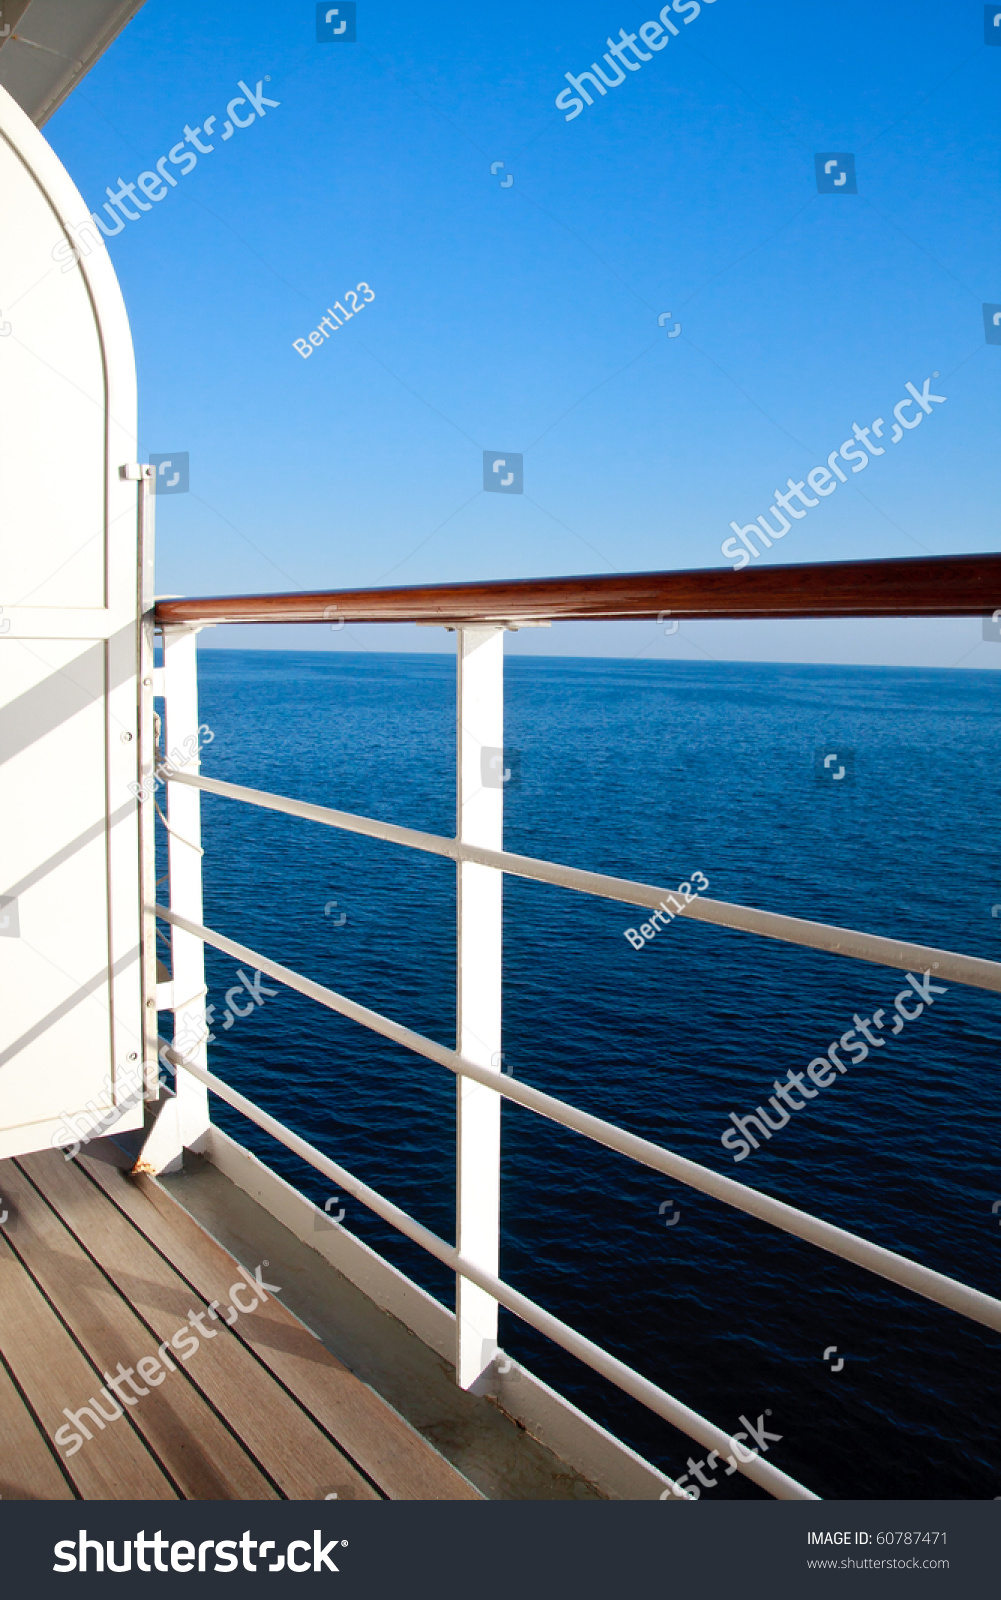 Luxurious cruise ship balcony view on blue ocean stock for Cruise balcony